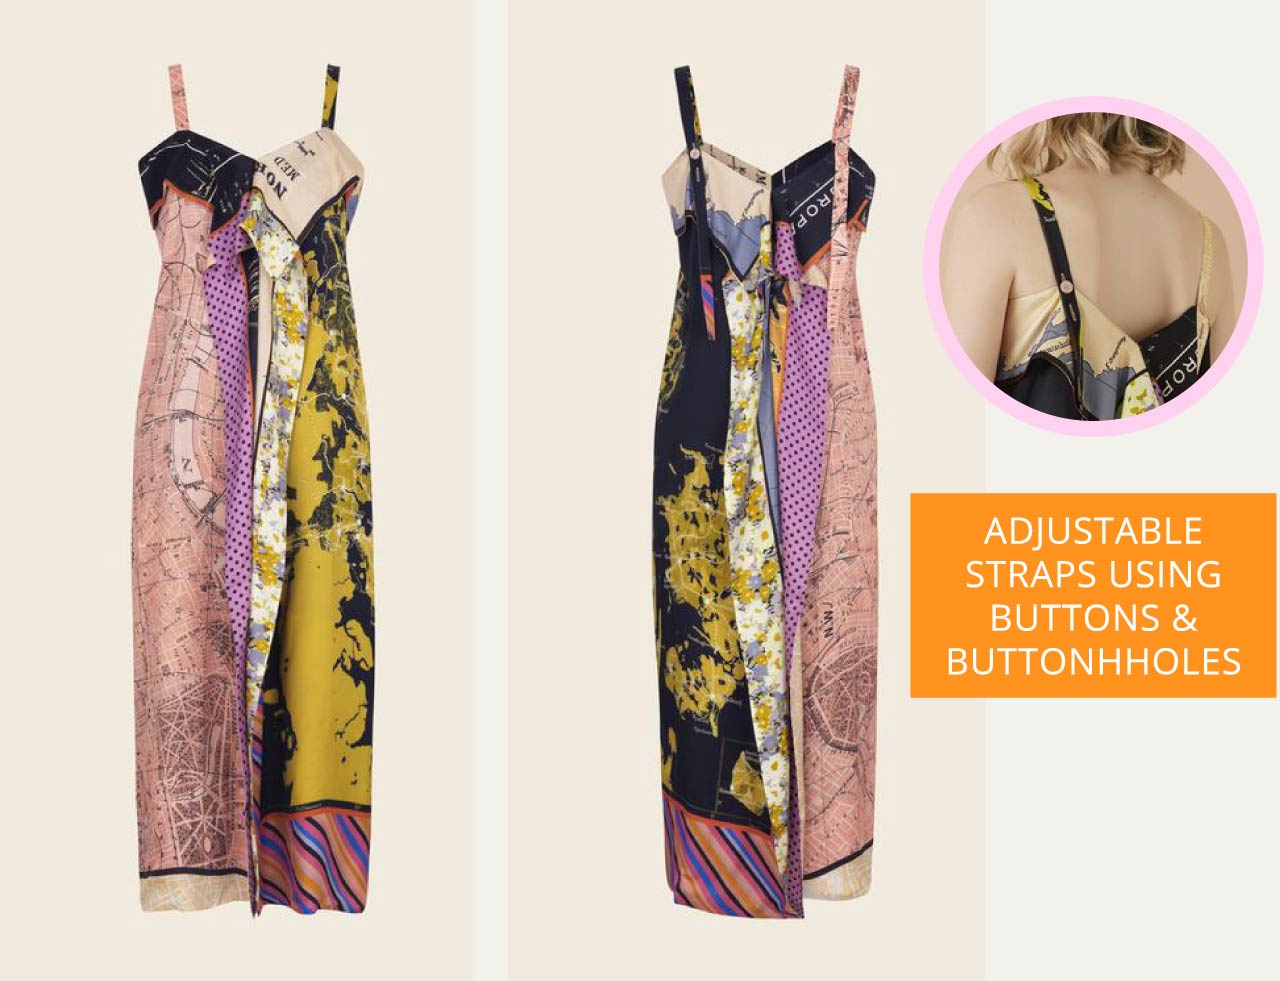 Details in Floral Prints at Stine Goya PF19 - The Cutting Class. Adjustable dress straps with buttons and buttonholes.